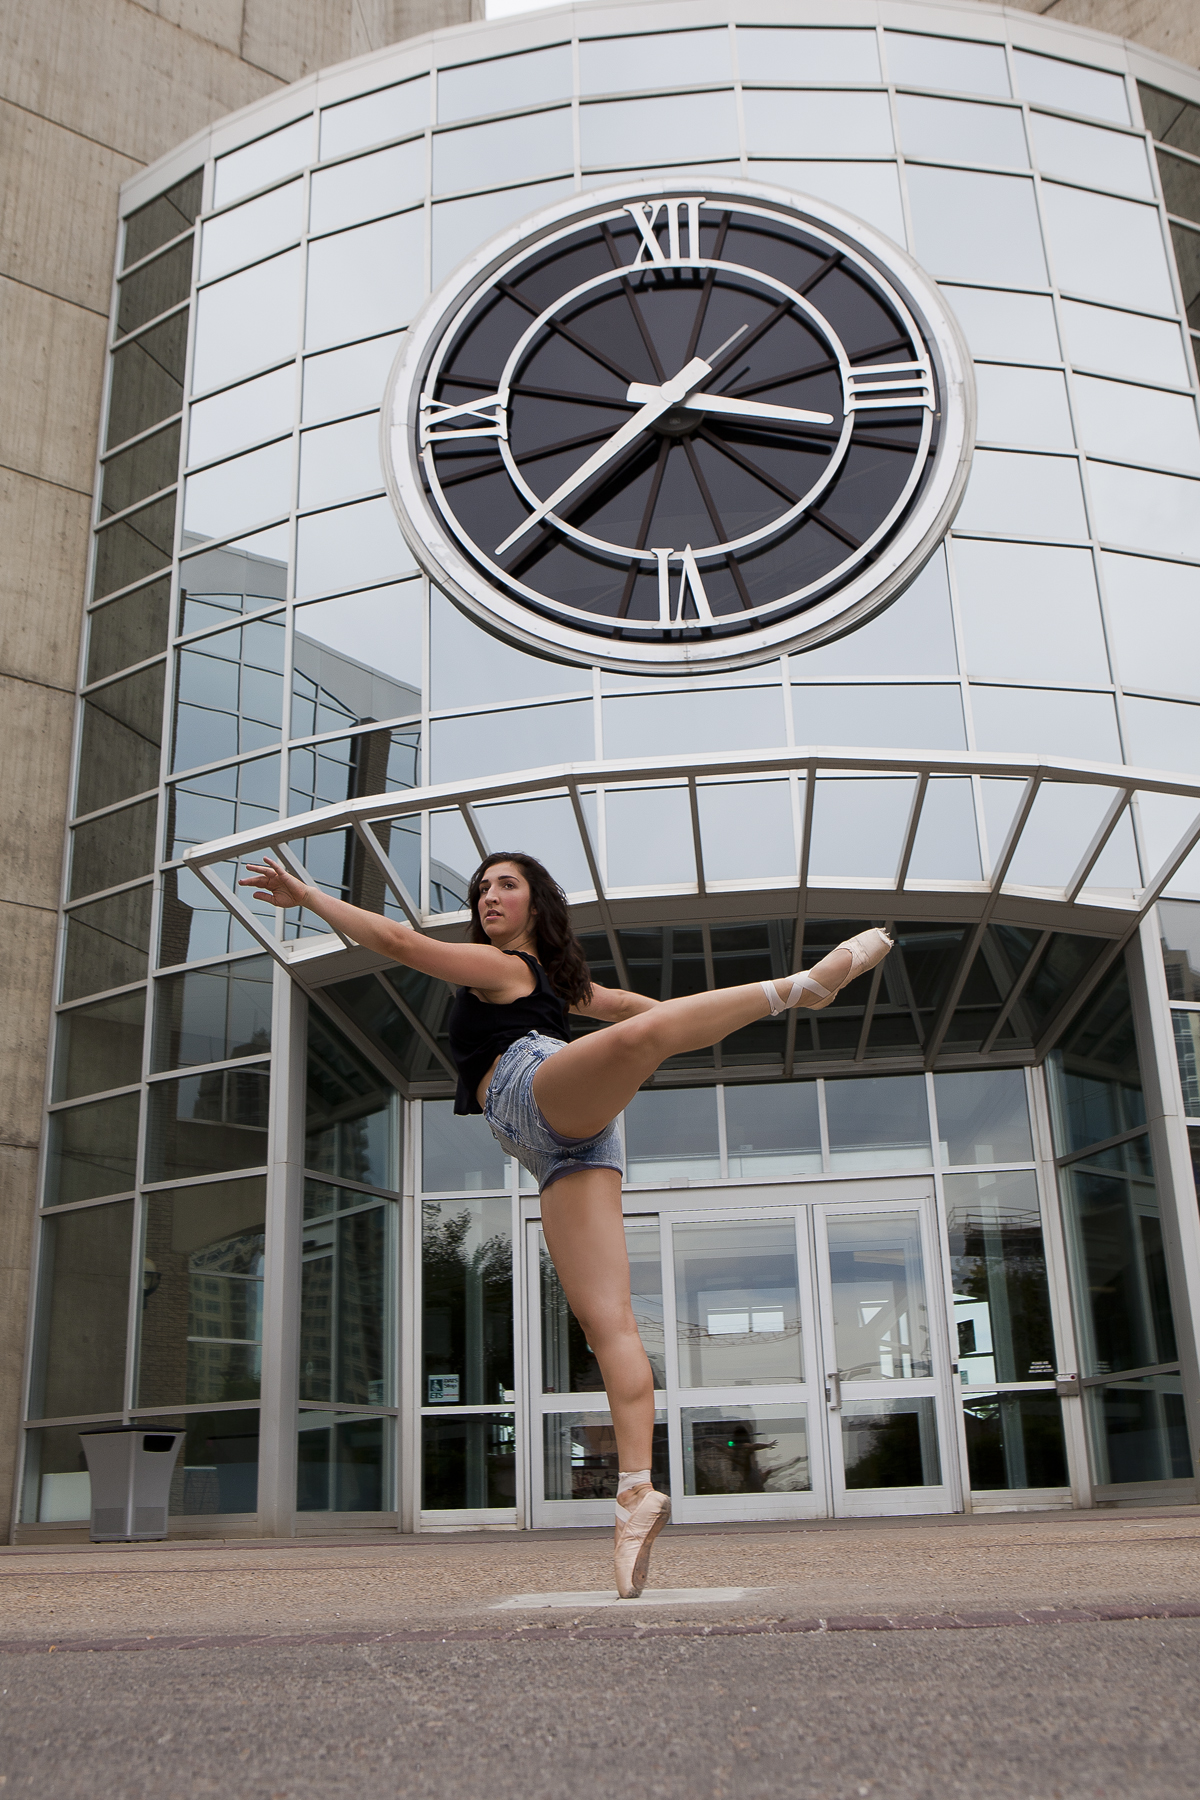 """We then moved to the clock tower at Grant MacEwan University. I must have said """"one more shot"""" about 10 times!"""